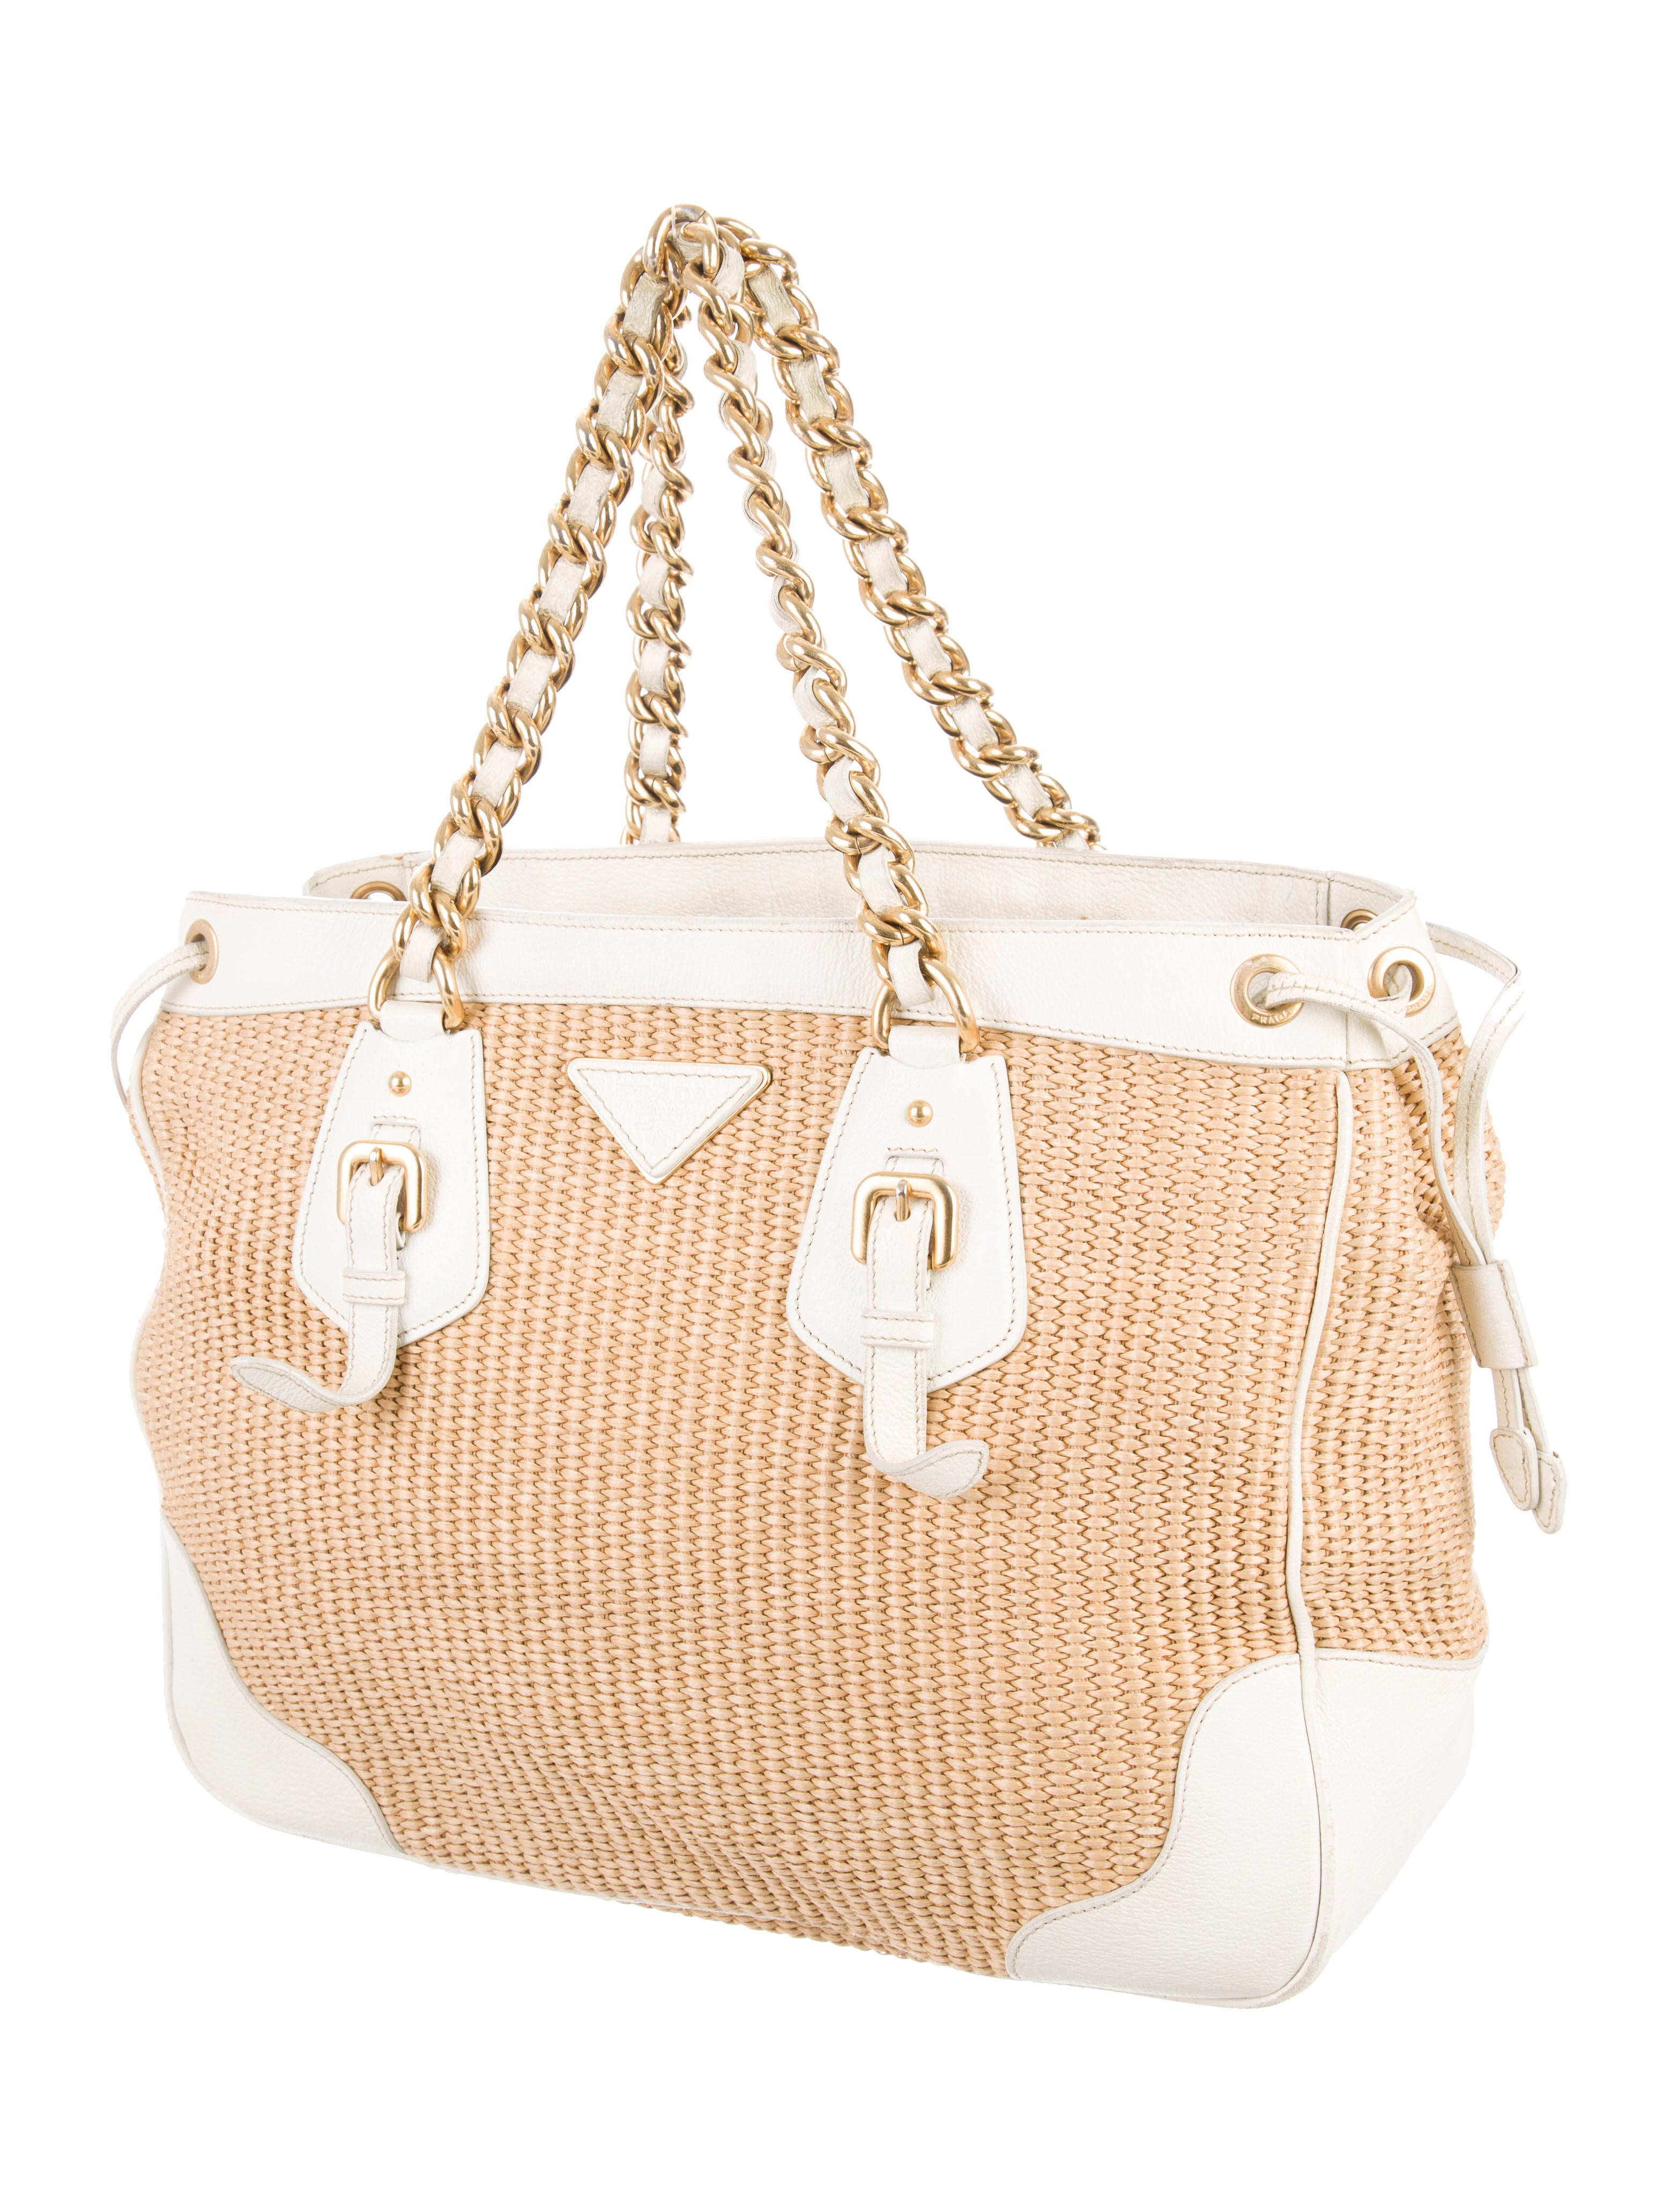 dbf32c17f962 Prada Cahier Woven Straw And Leather Bag 1bd045 | Stanford Center ...